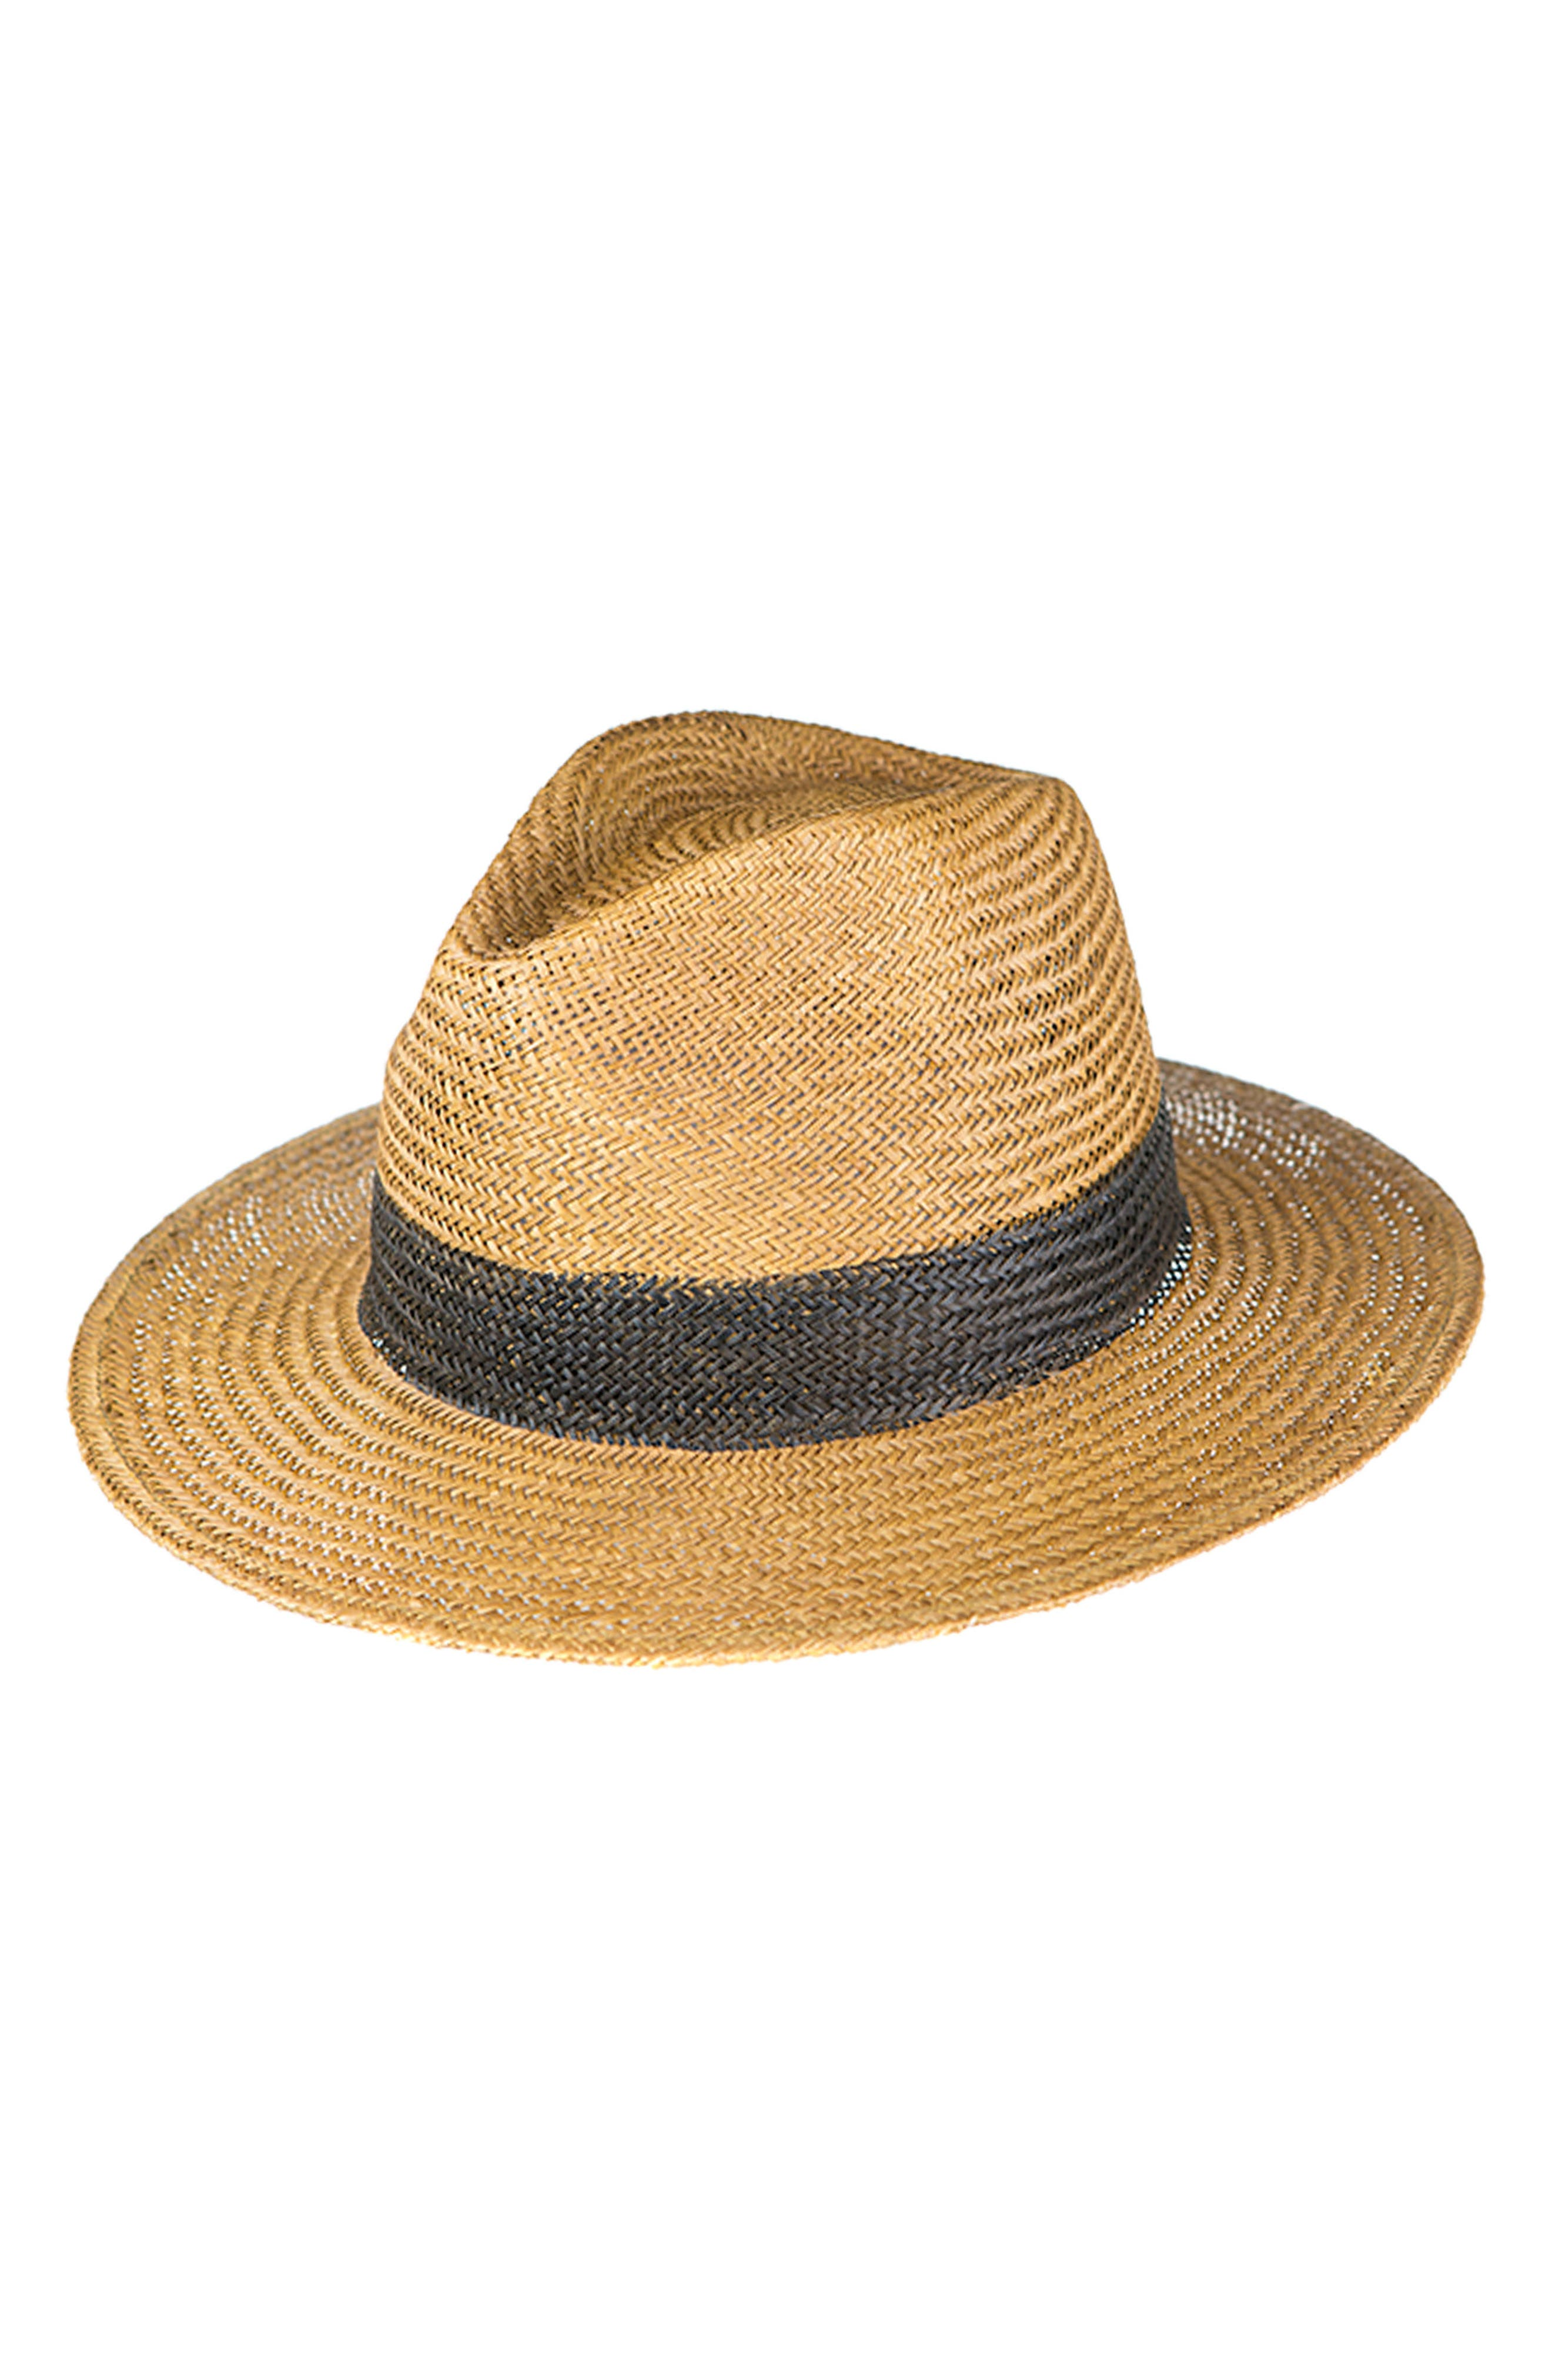 Cayenne Straw Resort Hat,                         Main,                         color, 230